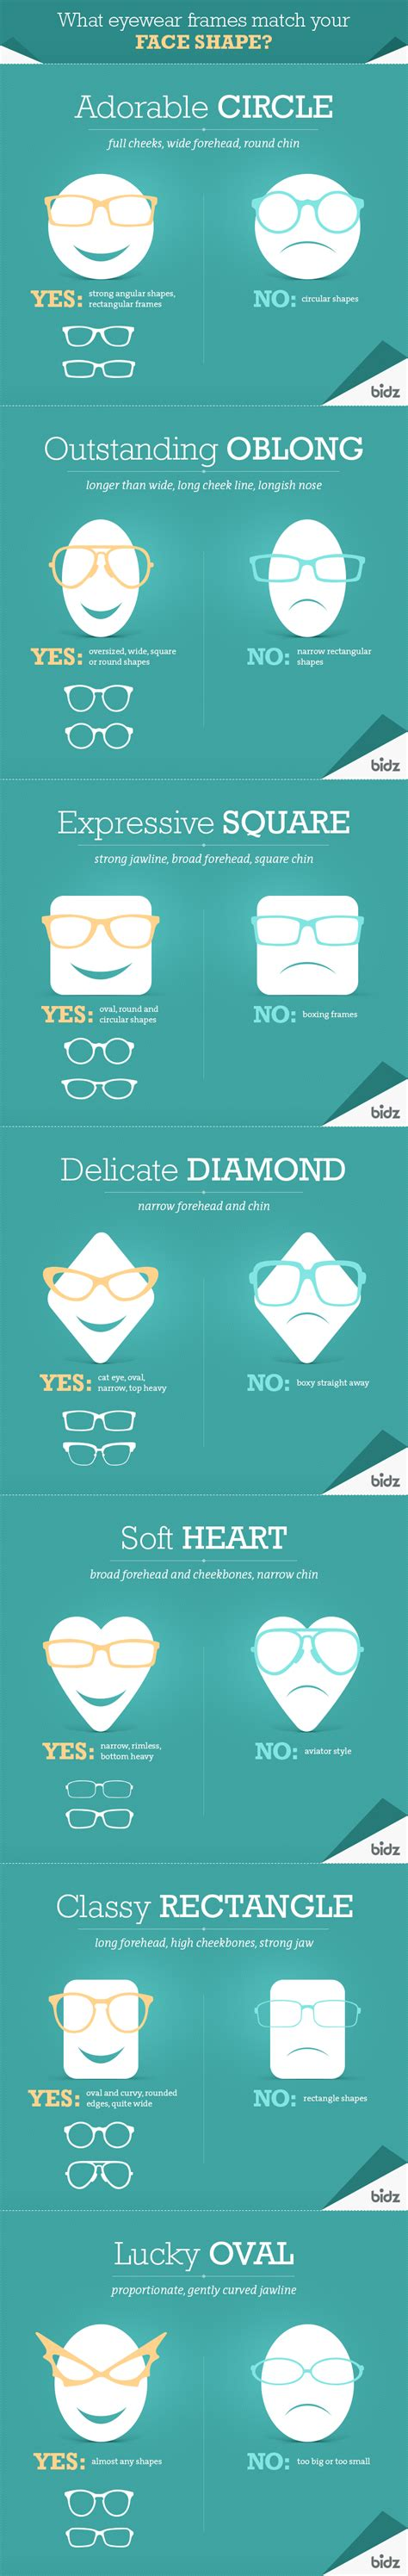 eyeglass frames that match your face shape and coloring what eyewear frames match your face shape infographic